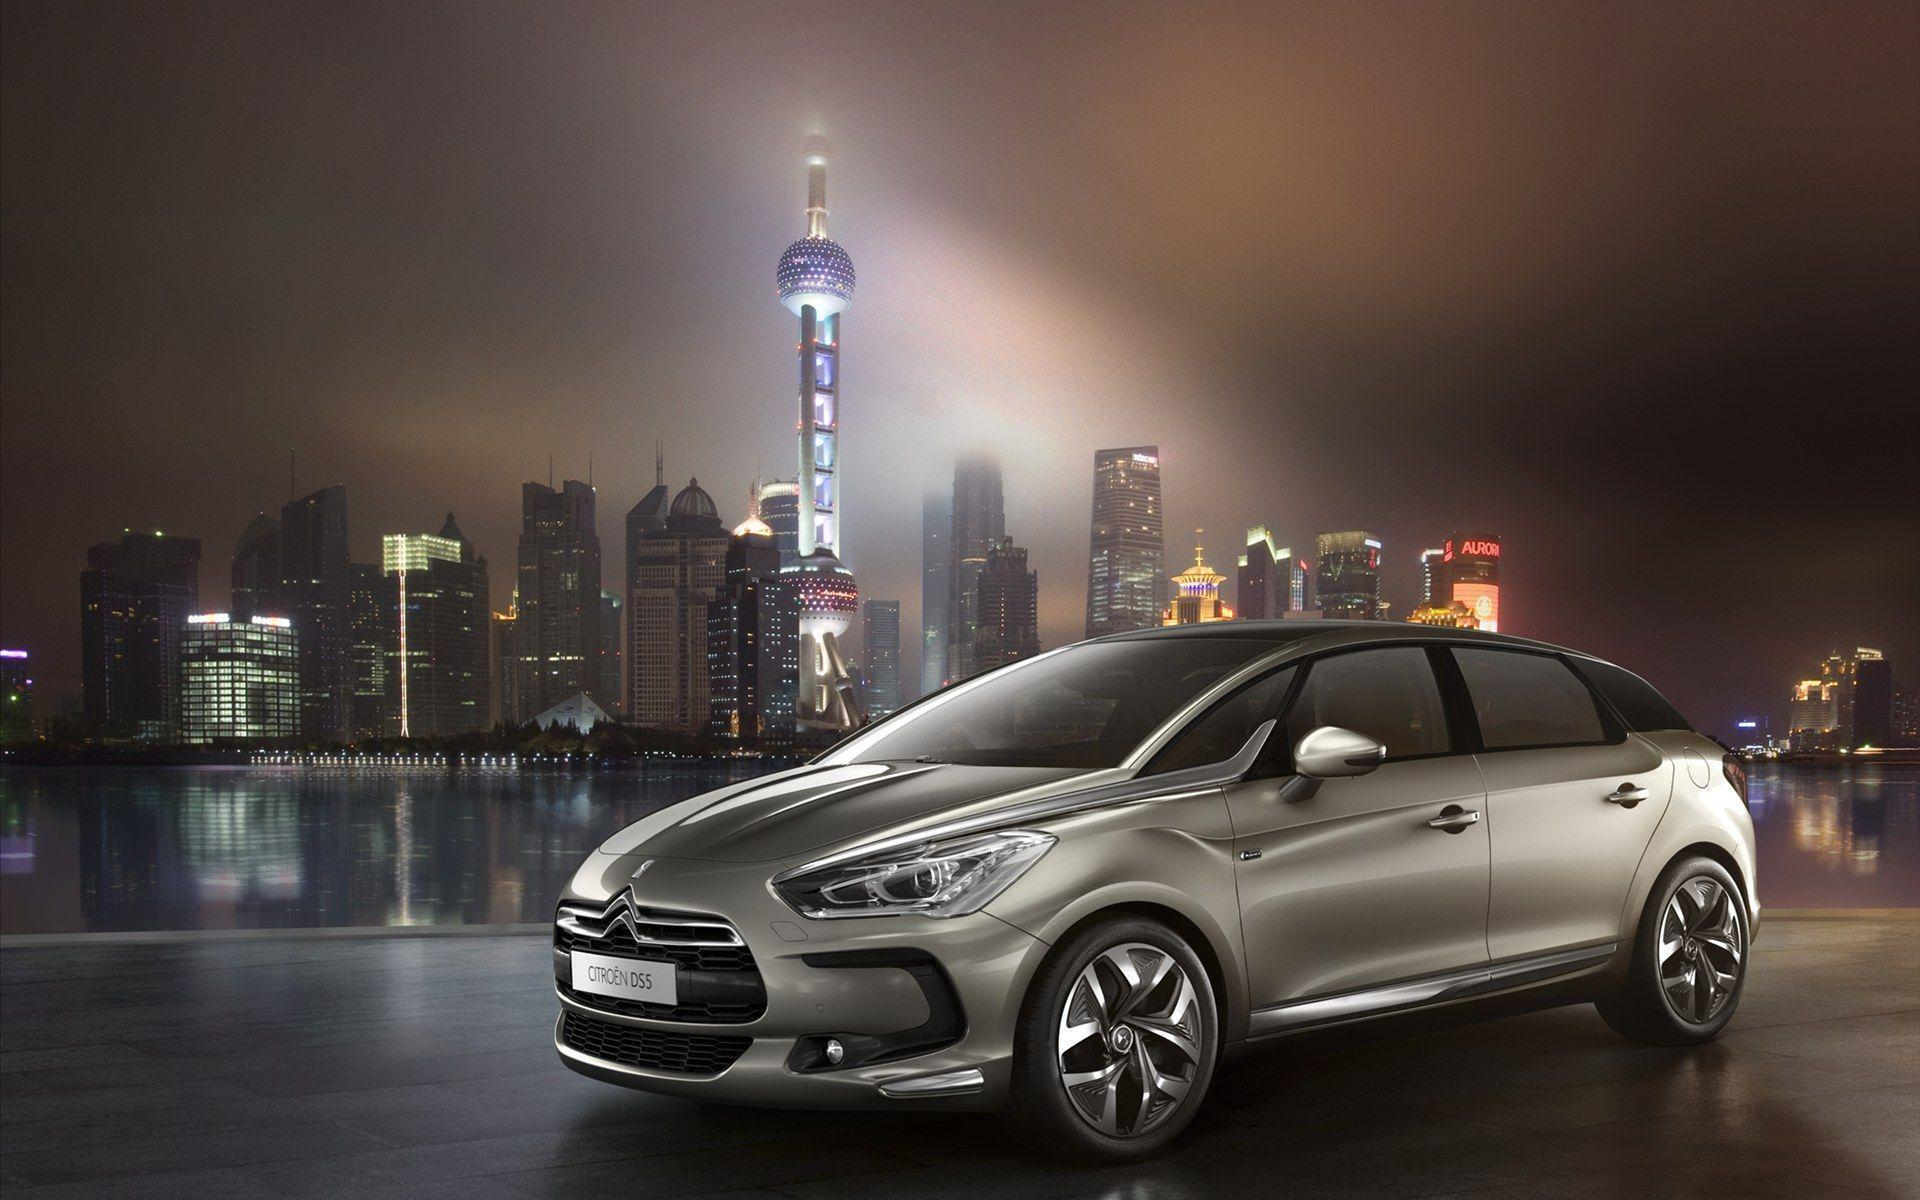 Citroen Wallpapers - Page 1 - HD Wallpapers